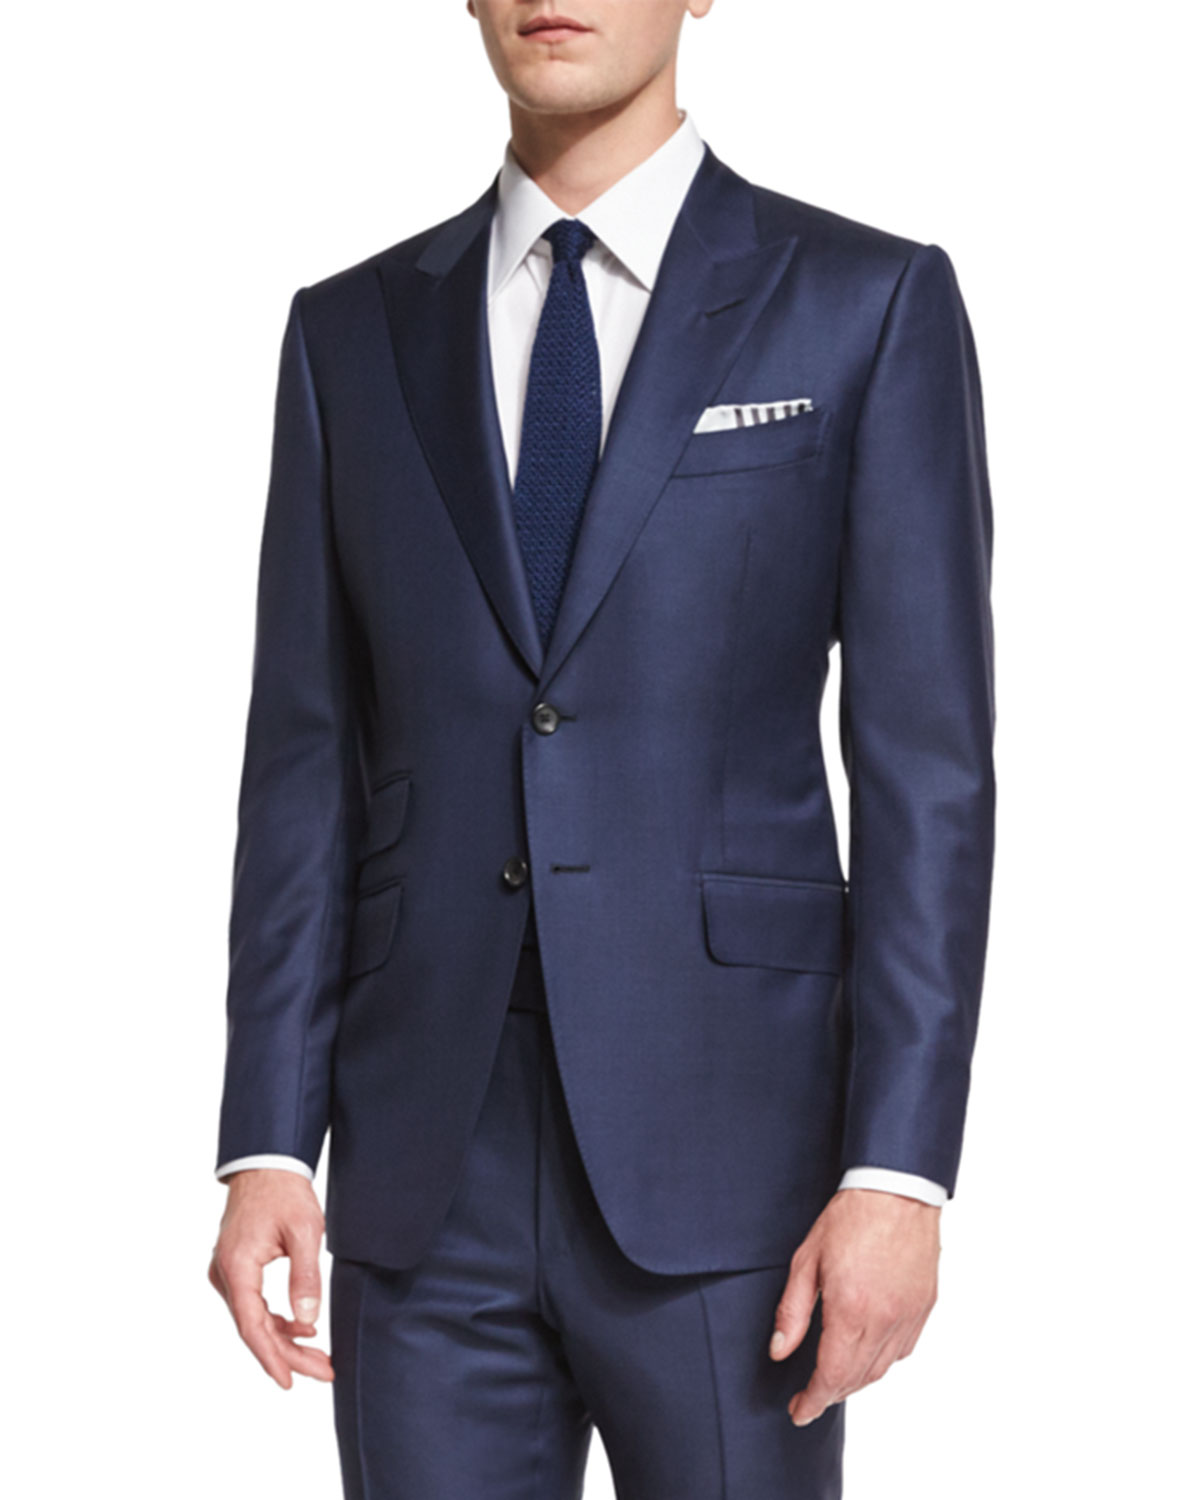 Tom Ford O Connor Base Navy Sharkskin Two Piece Suit Malibu Mart